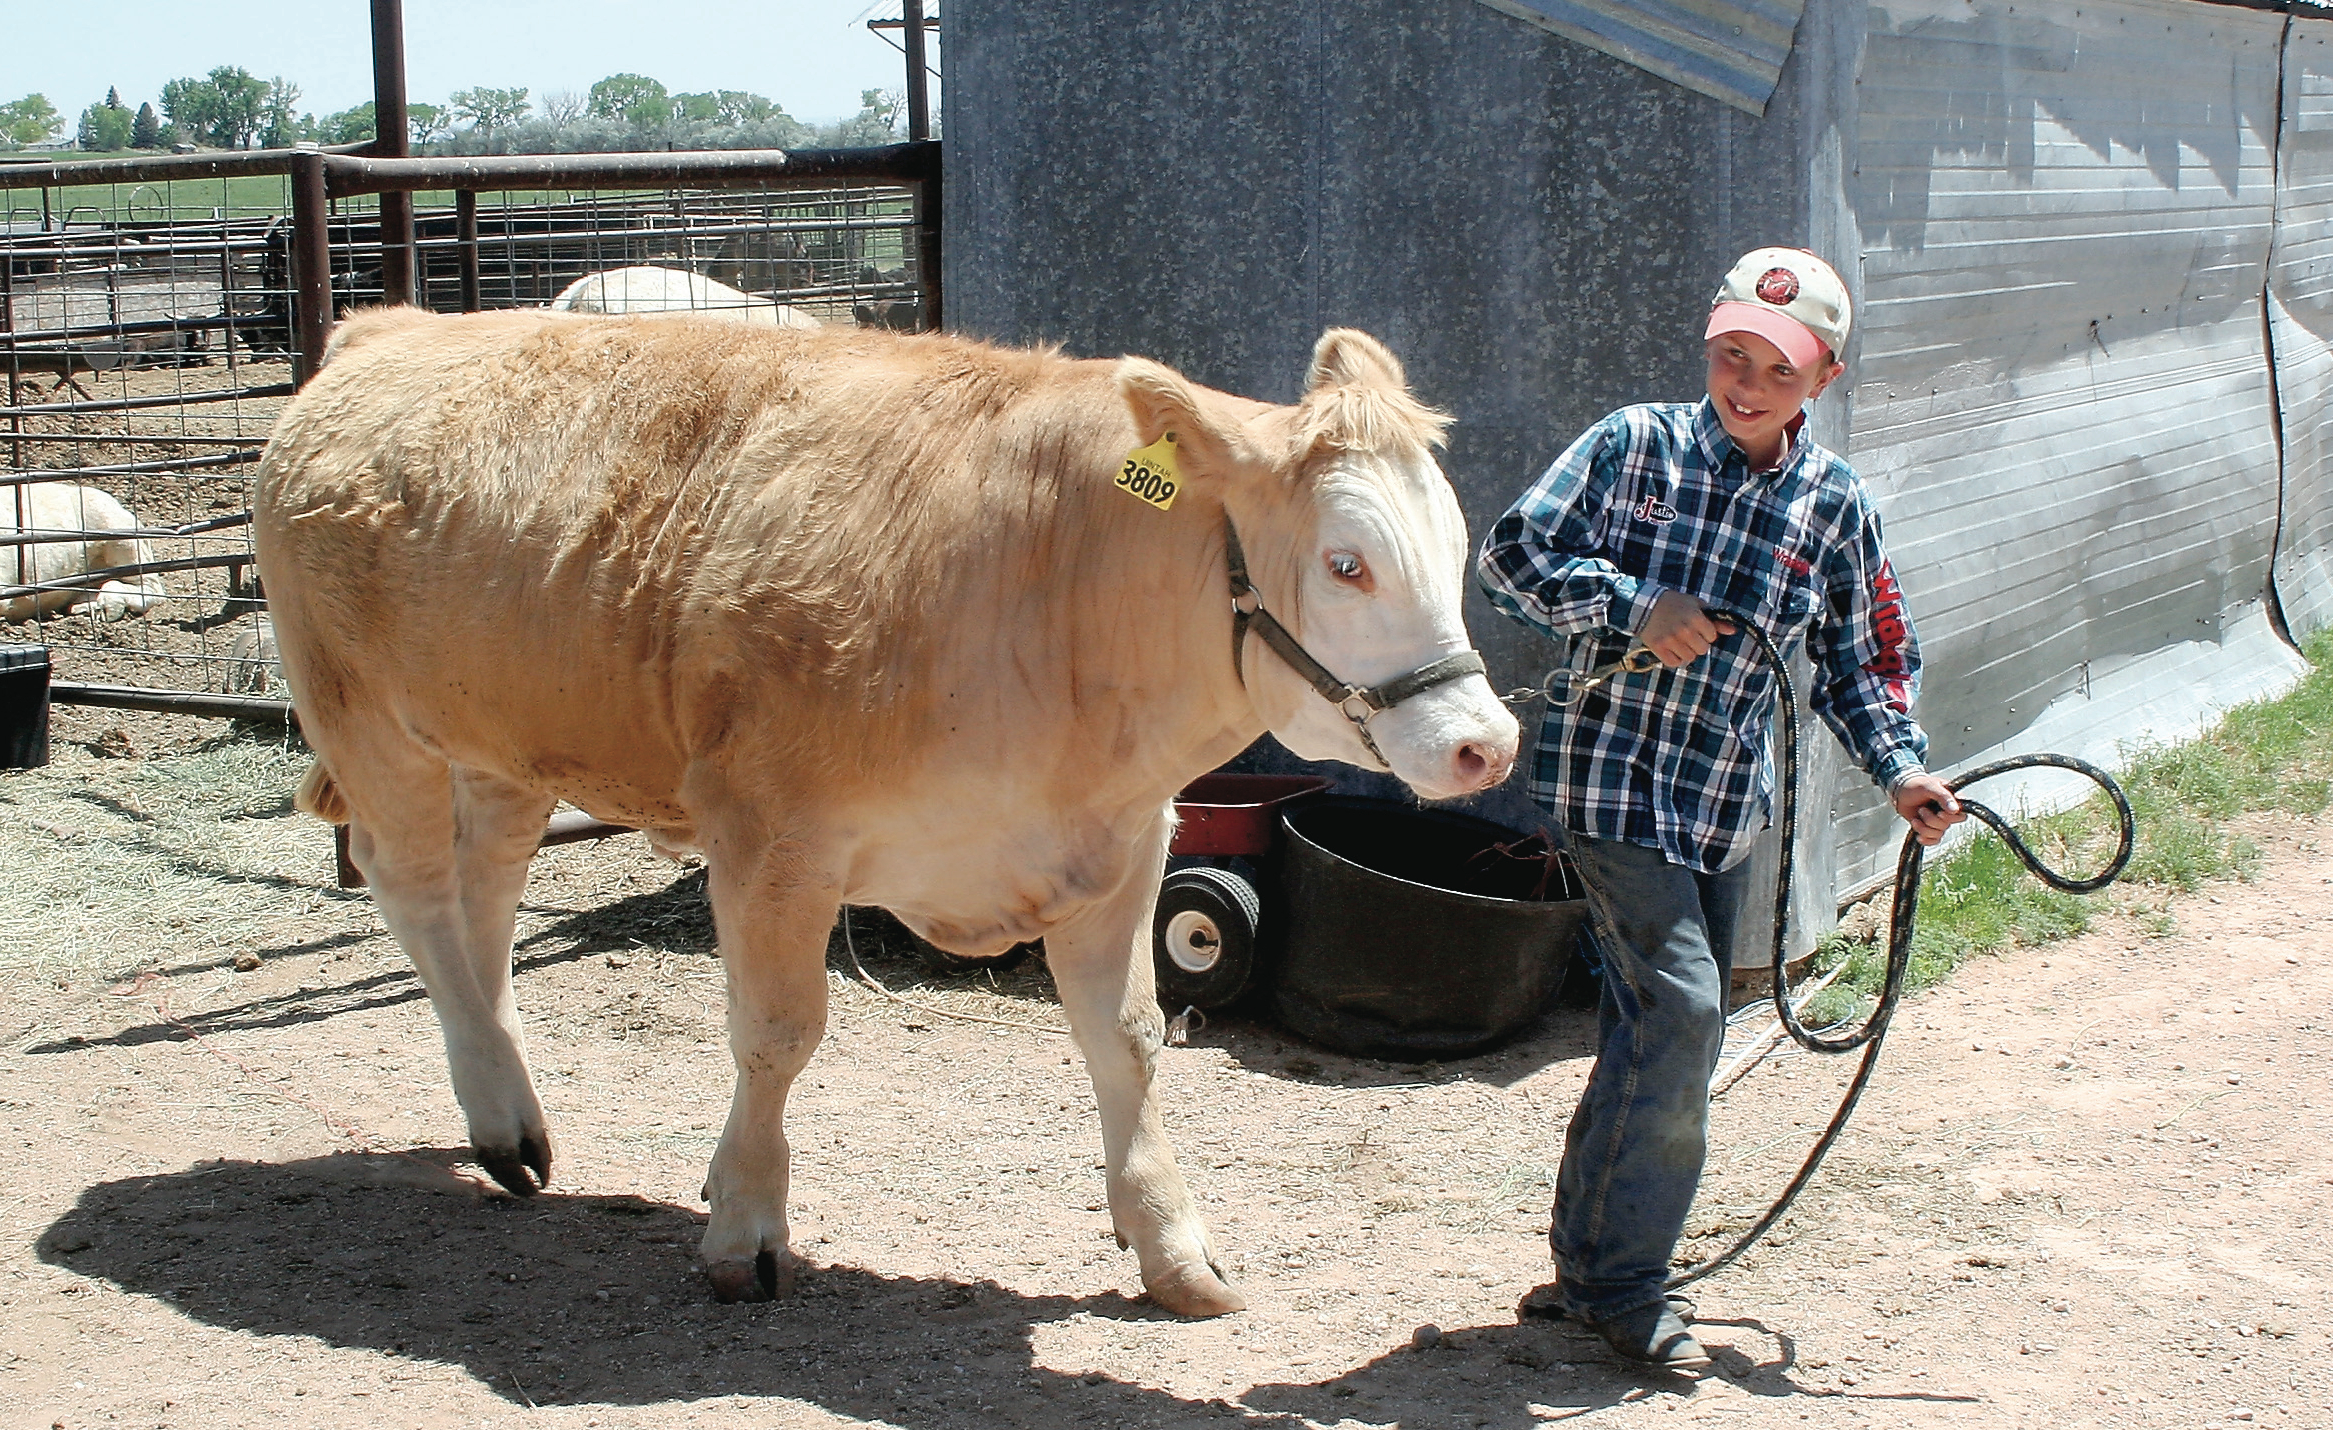 Josh Frost leads his 1,100-pound steer, Goober, from its corral. Josh, age 12, has been showing animals at livestock shows since he was in third grade.